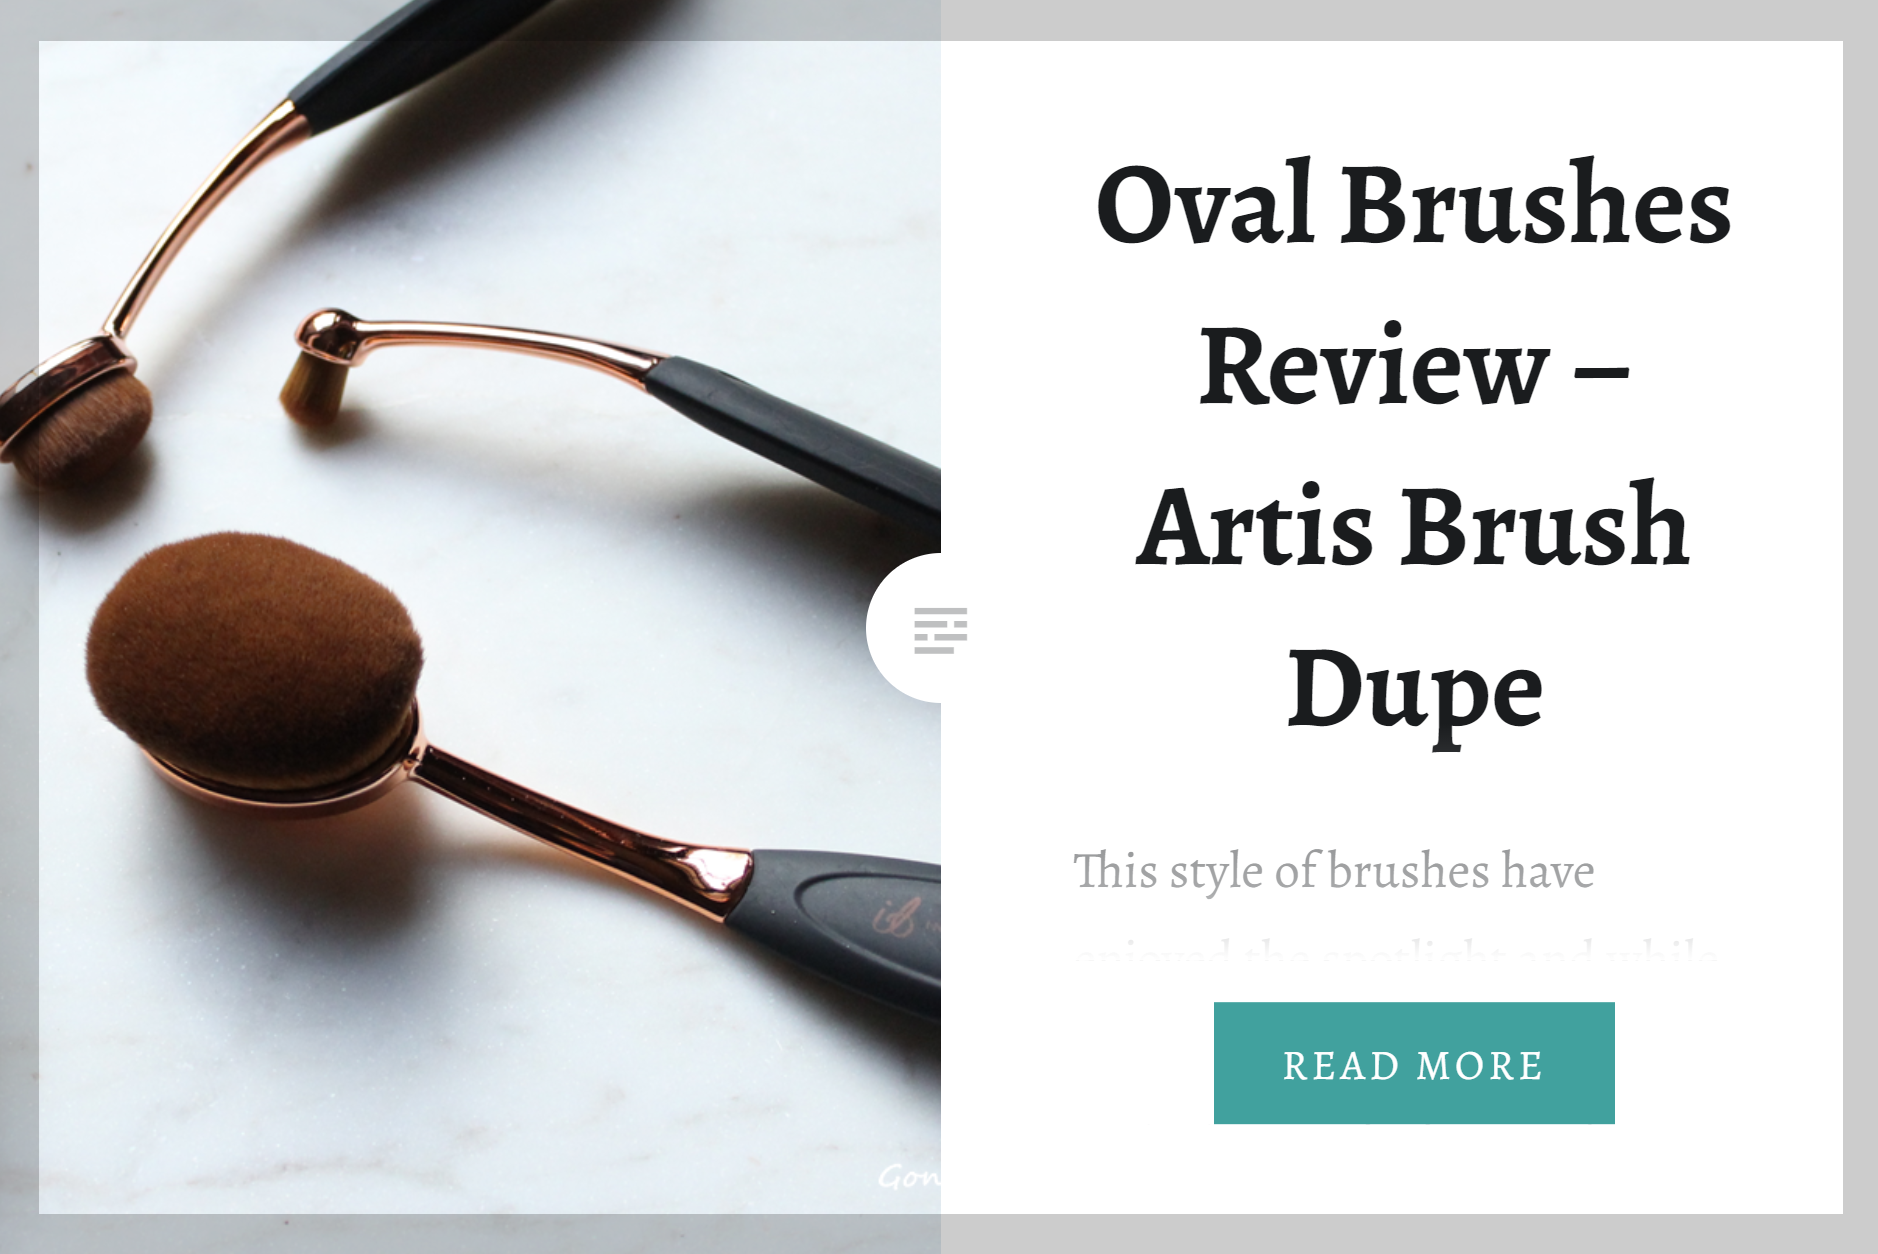 Oval Brushes Review Artis Brush Dupe. Gone Swatching xo